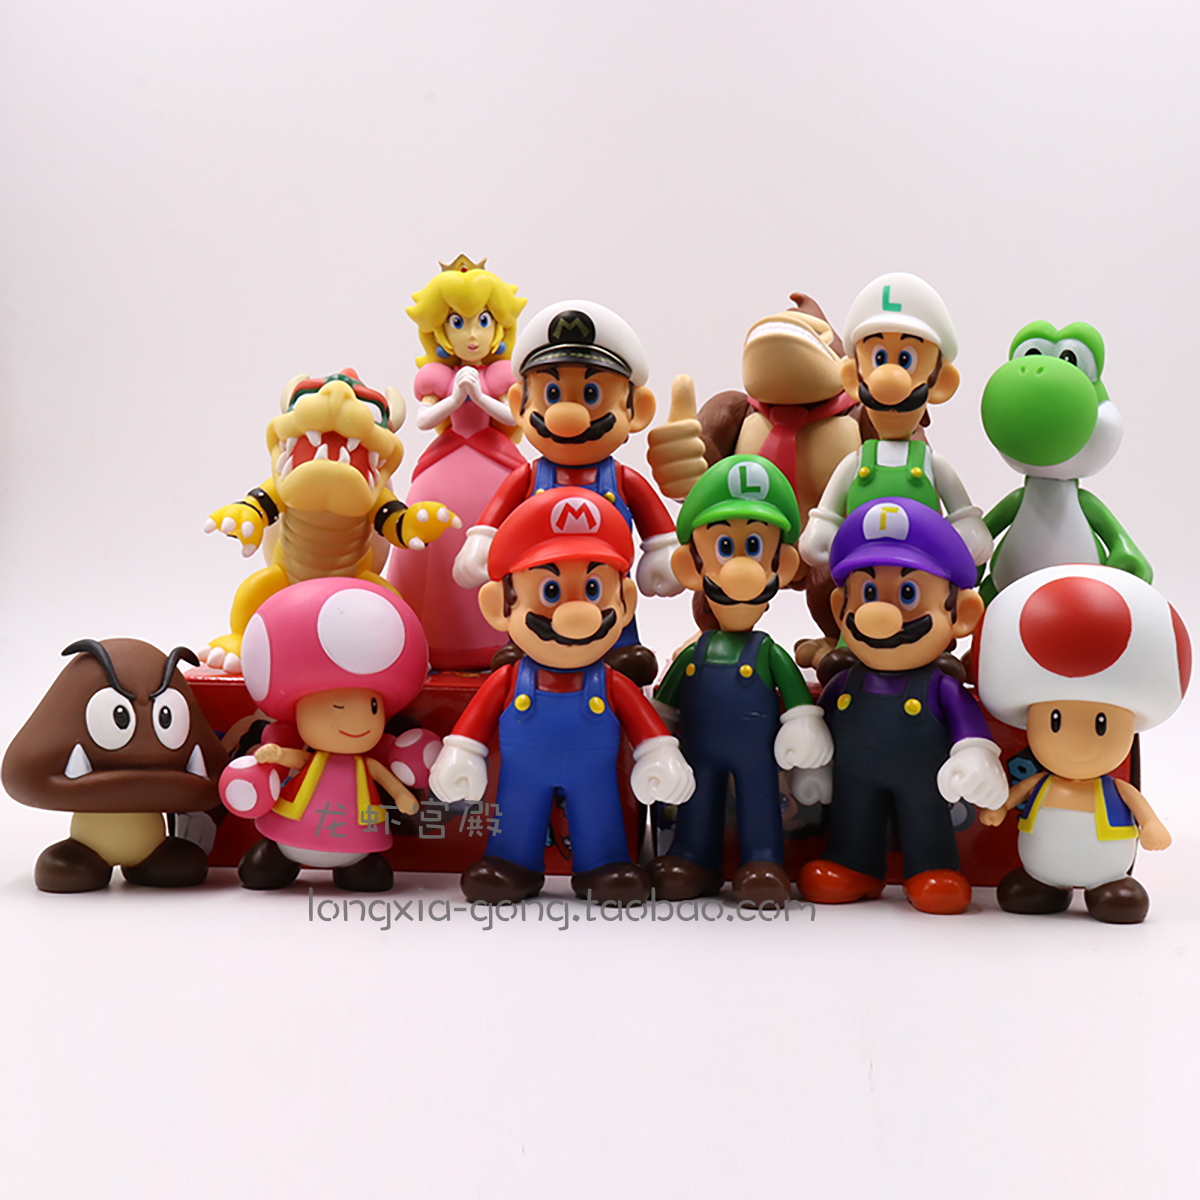 ฟิกเกอร์การ์ตูนอนิเมะนำเข้าSurrounding the Game Super Mario Louis Brothers Doll Mario Garage Kit Odyssey Figure Doll Toy